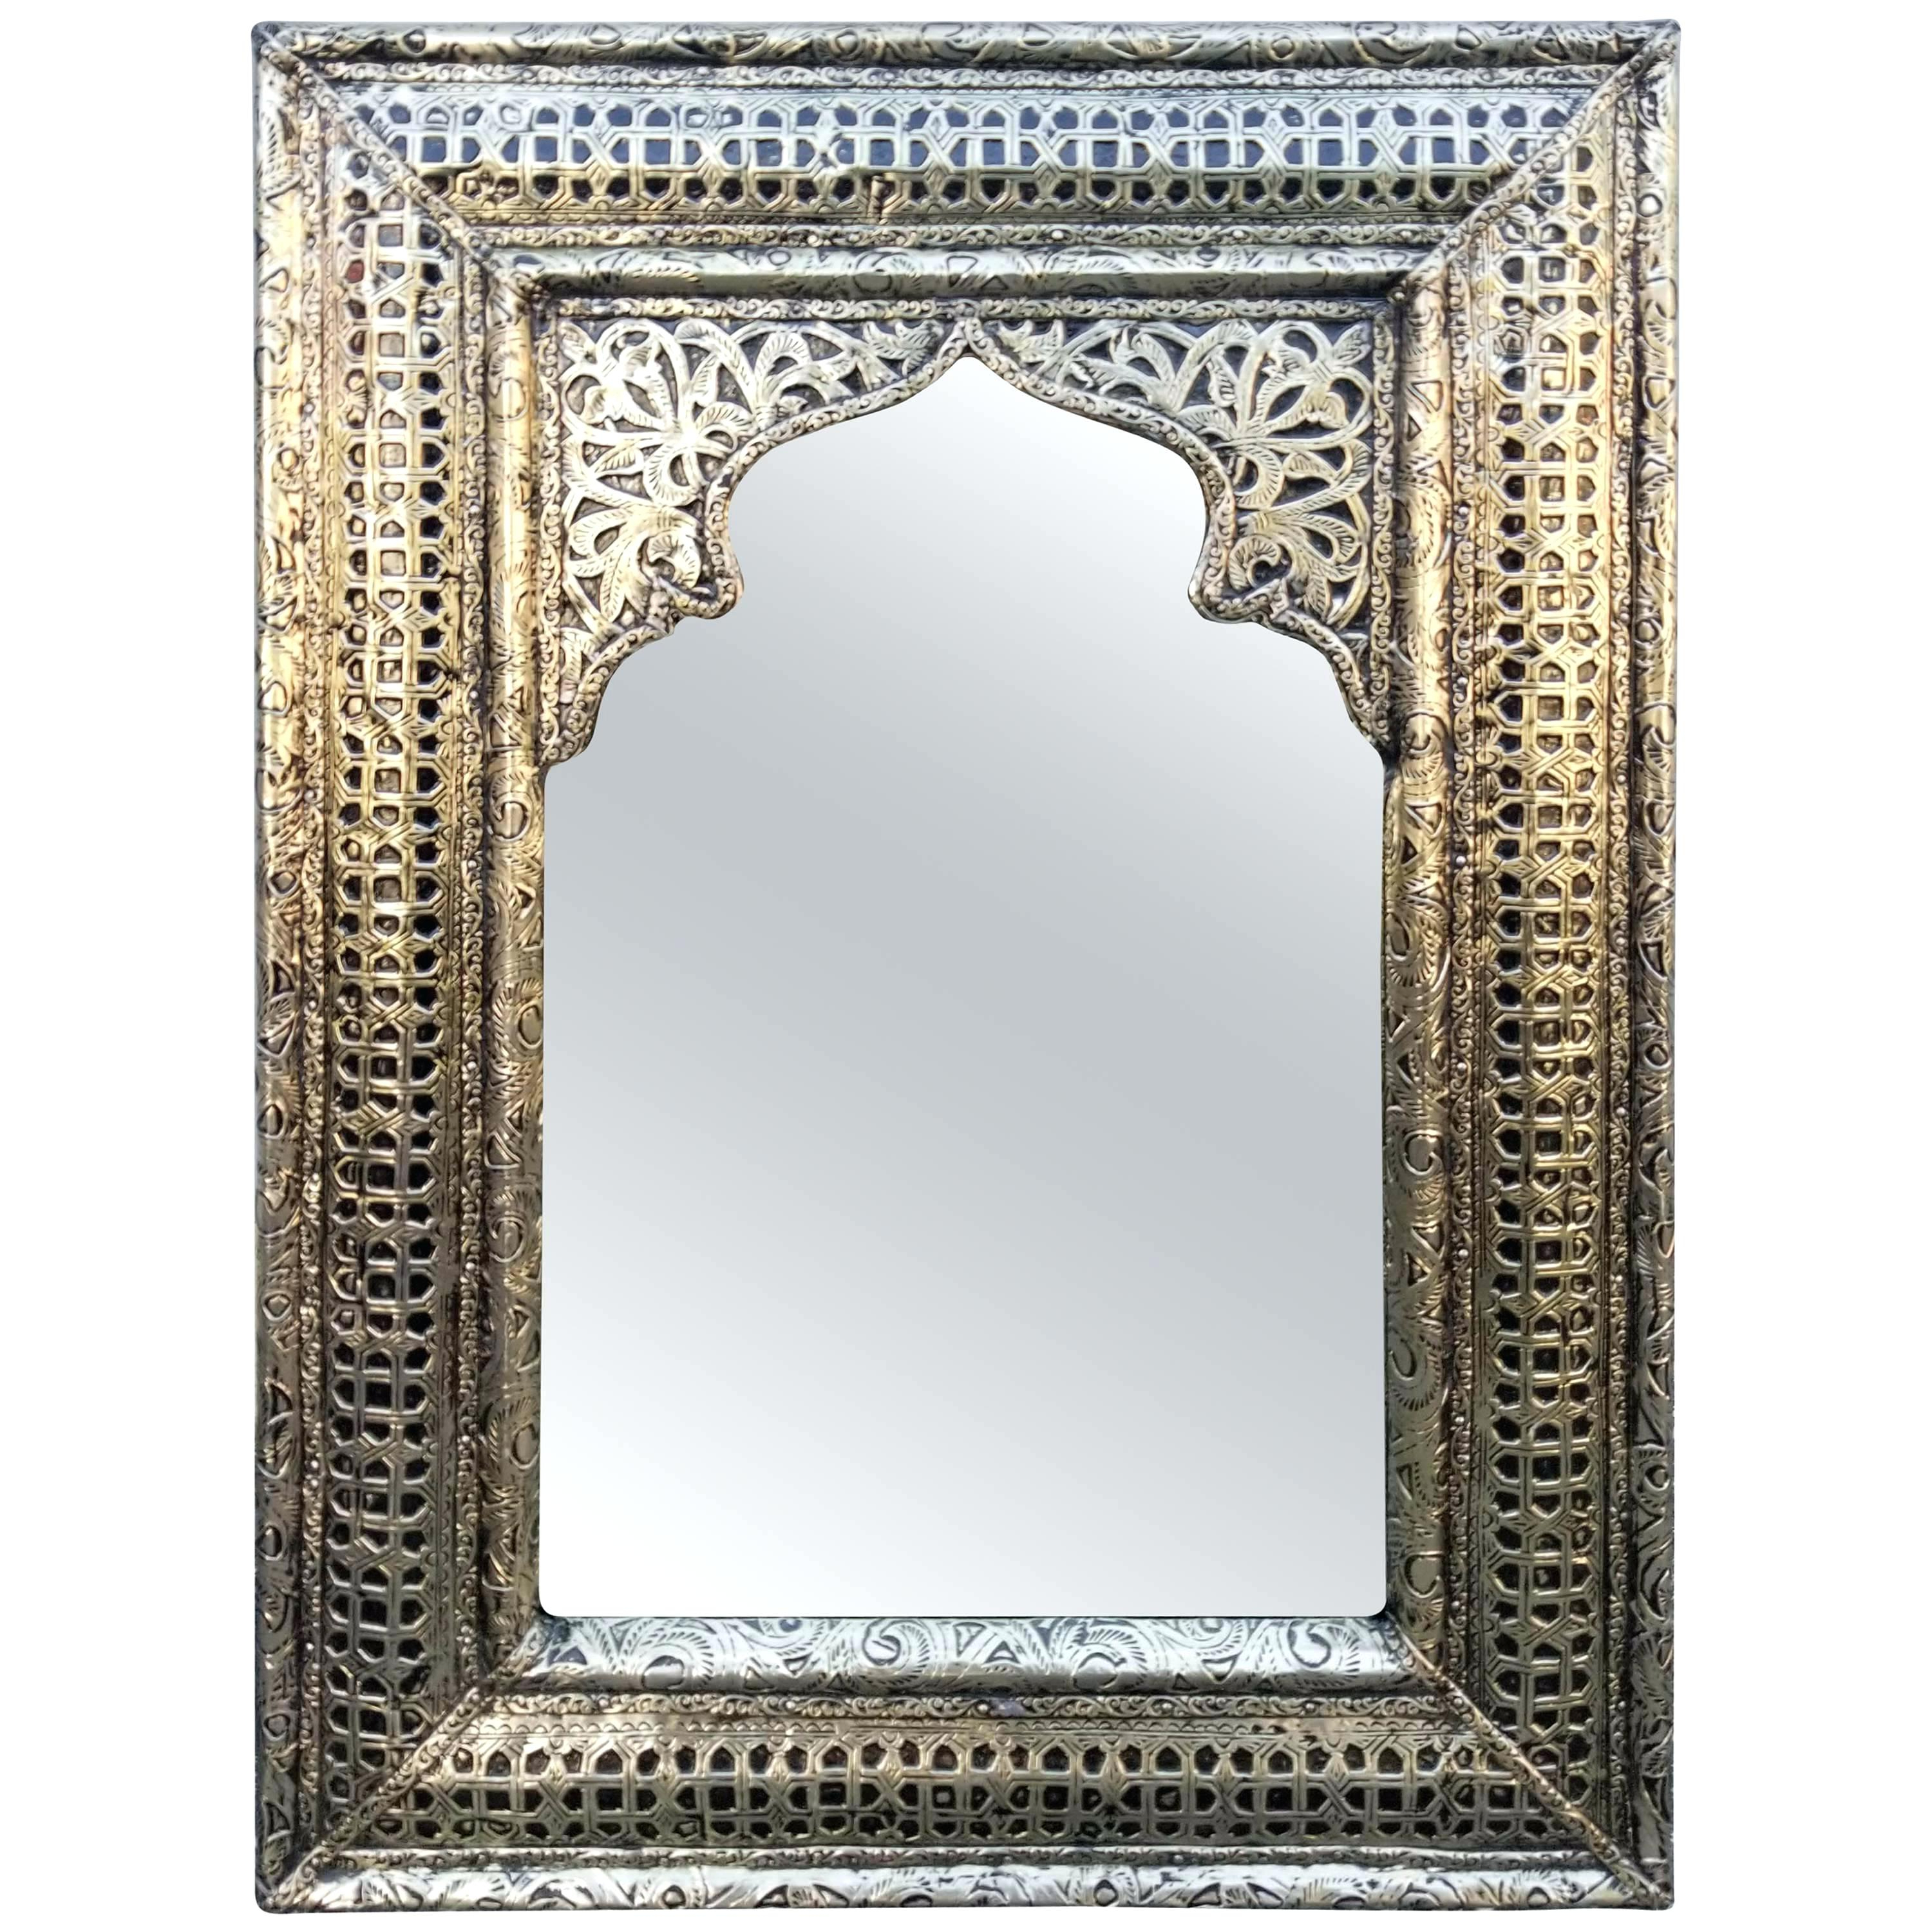 Widely Used Moroccan Wall Mirrors Inside Moroccan Wall Mirror – Dlinkla.co (Gallery 11 of 20)